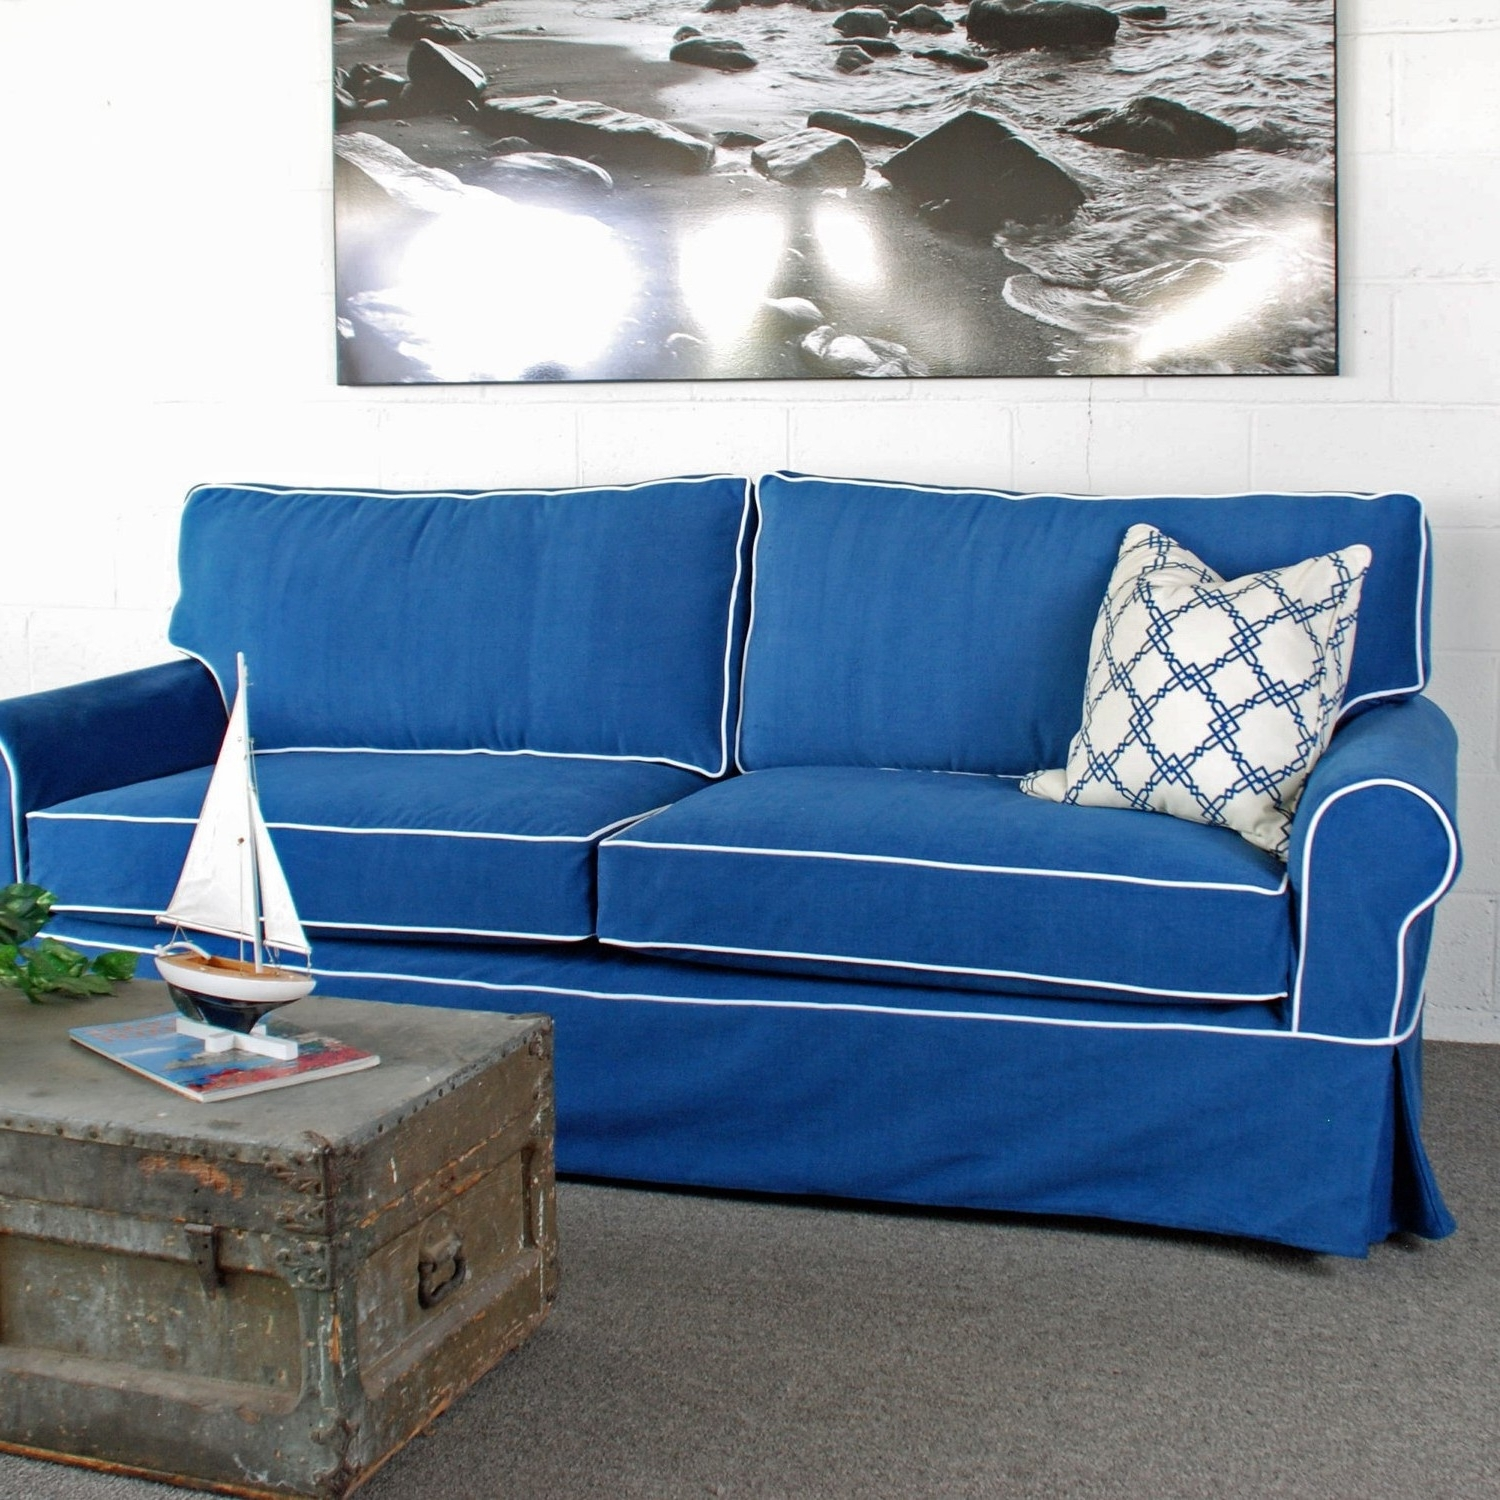 Lovely Washable Slipcovered Sofas 11 For Your Modern Sofa In Favorite Washable Sofas (View 7 of 20)